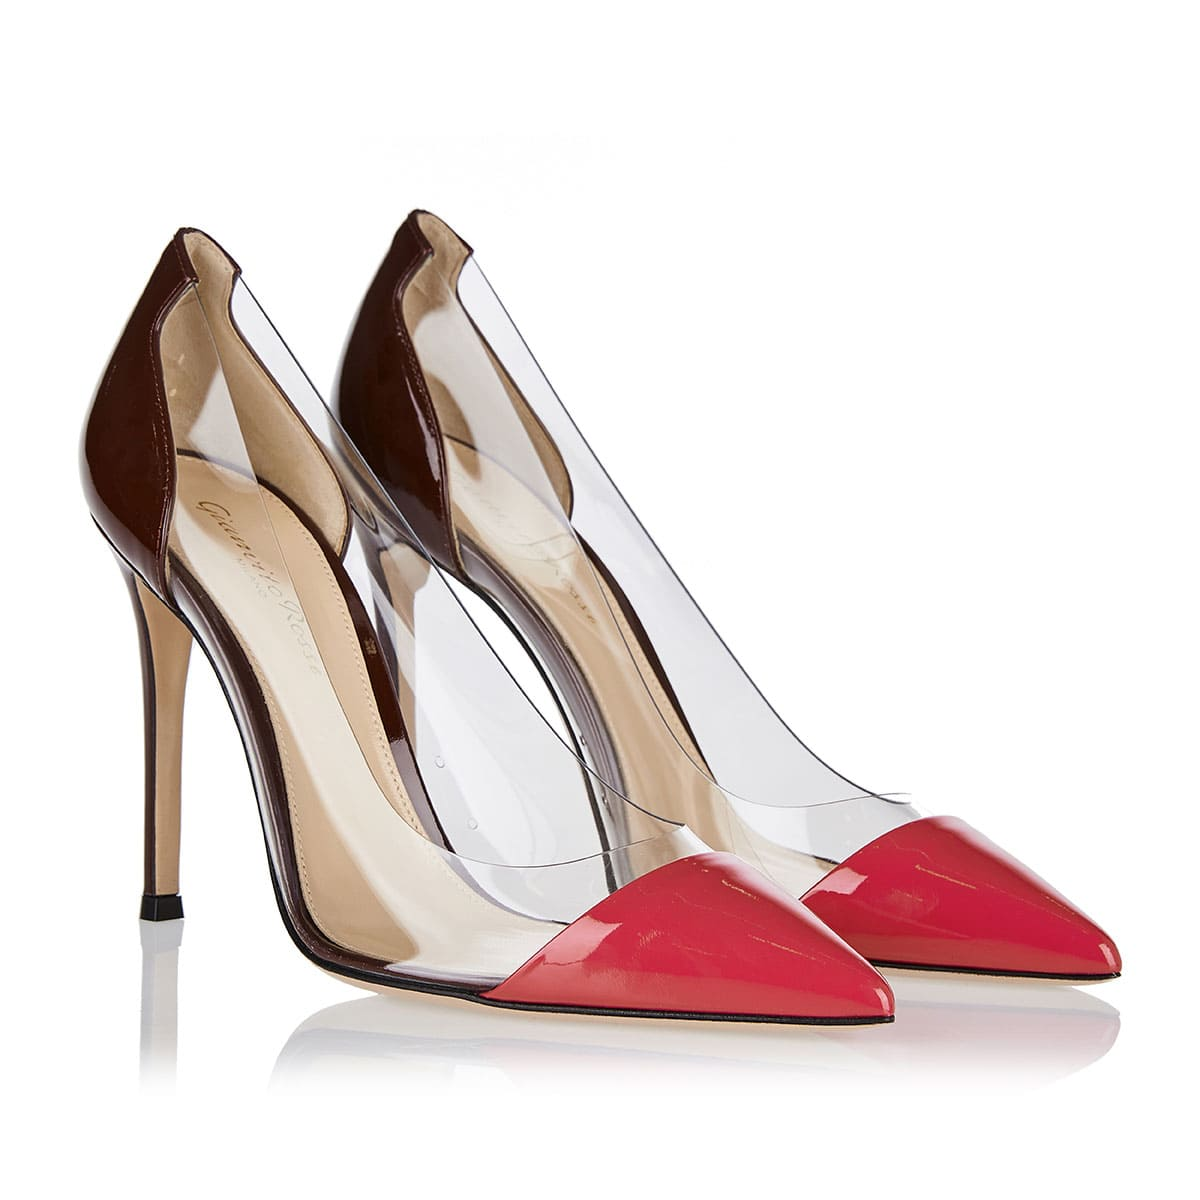 Plexi 105 patent leather and pvc pumps